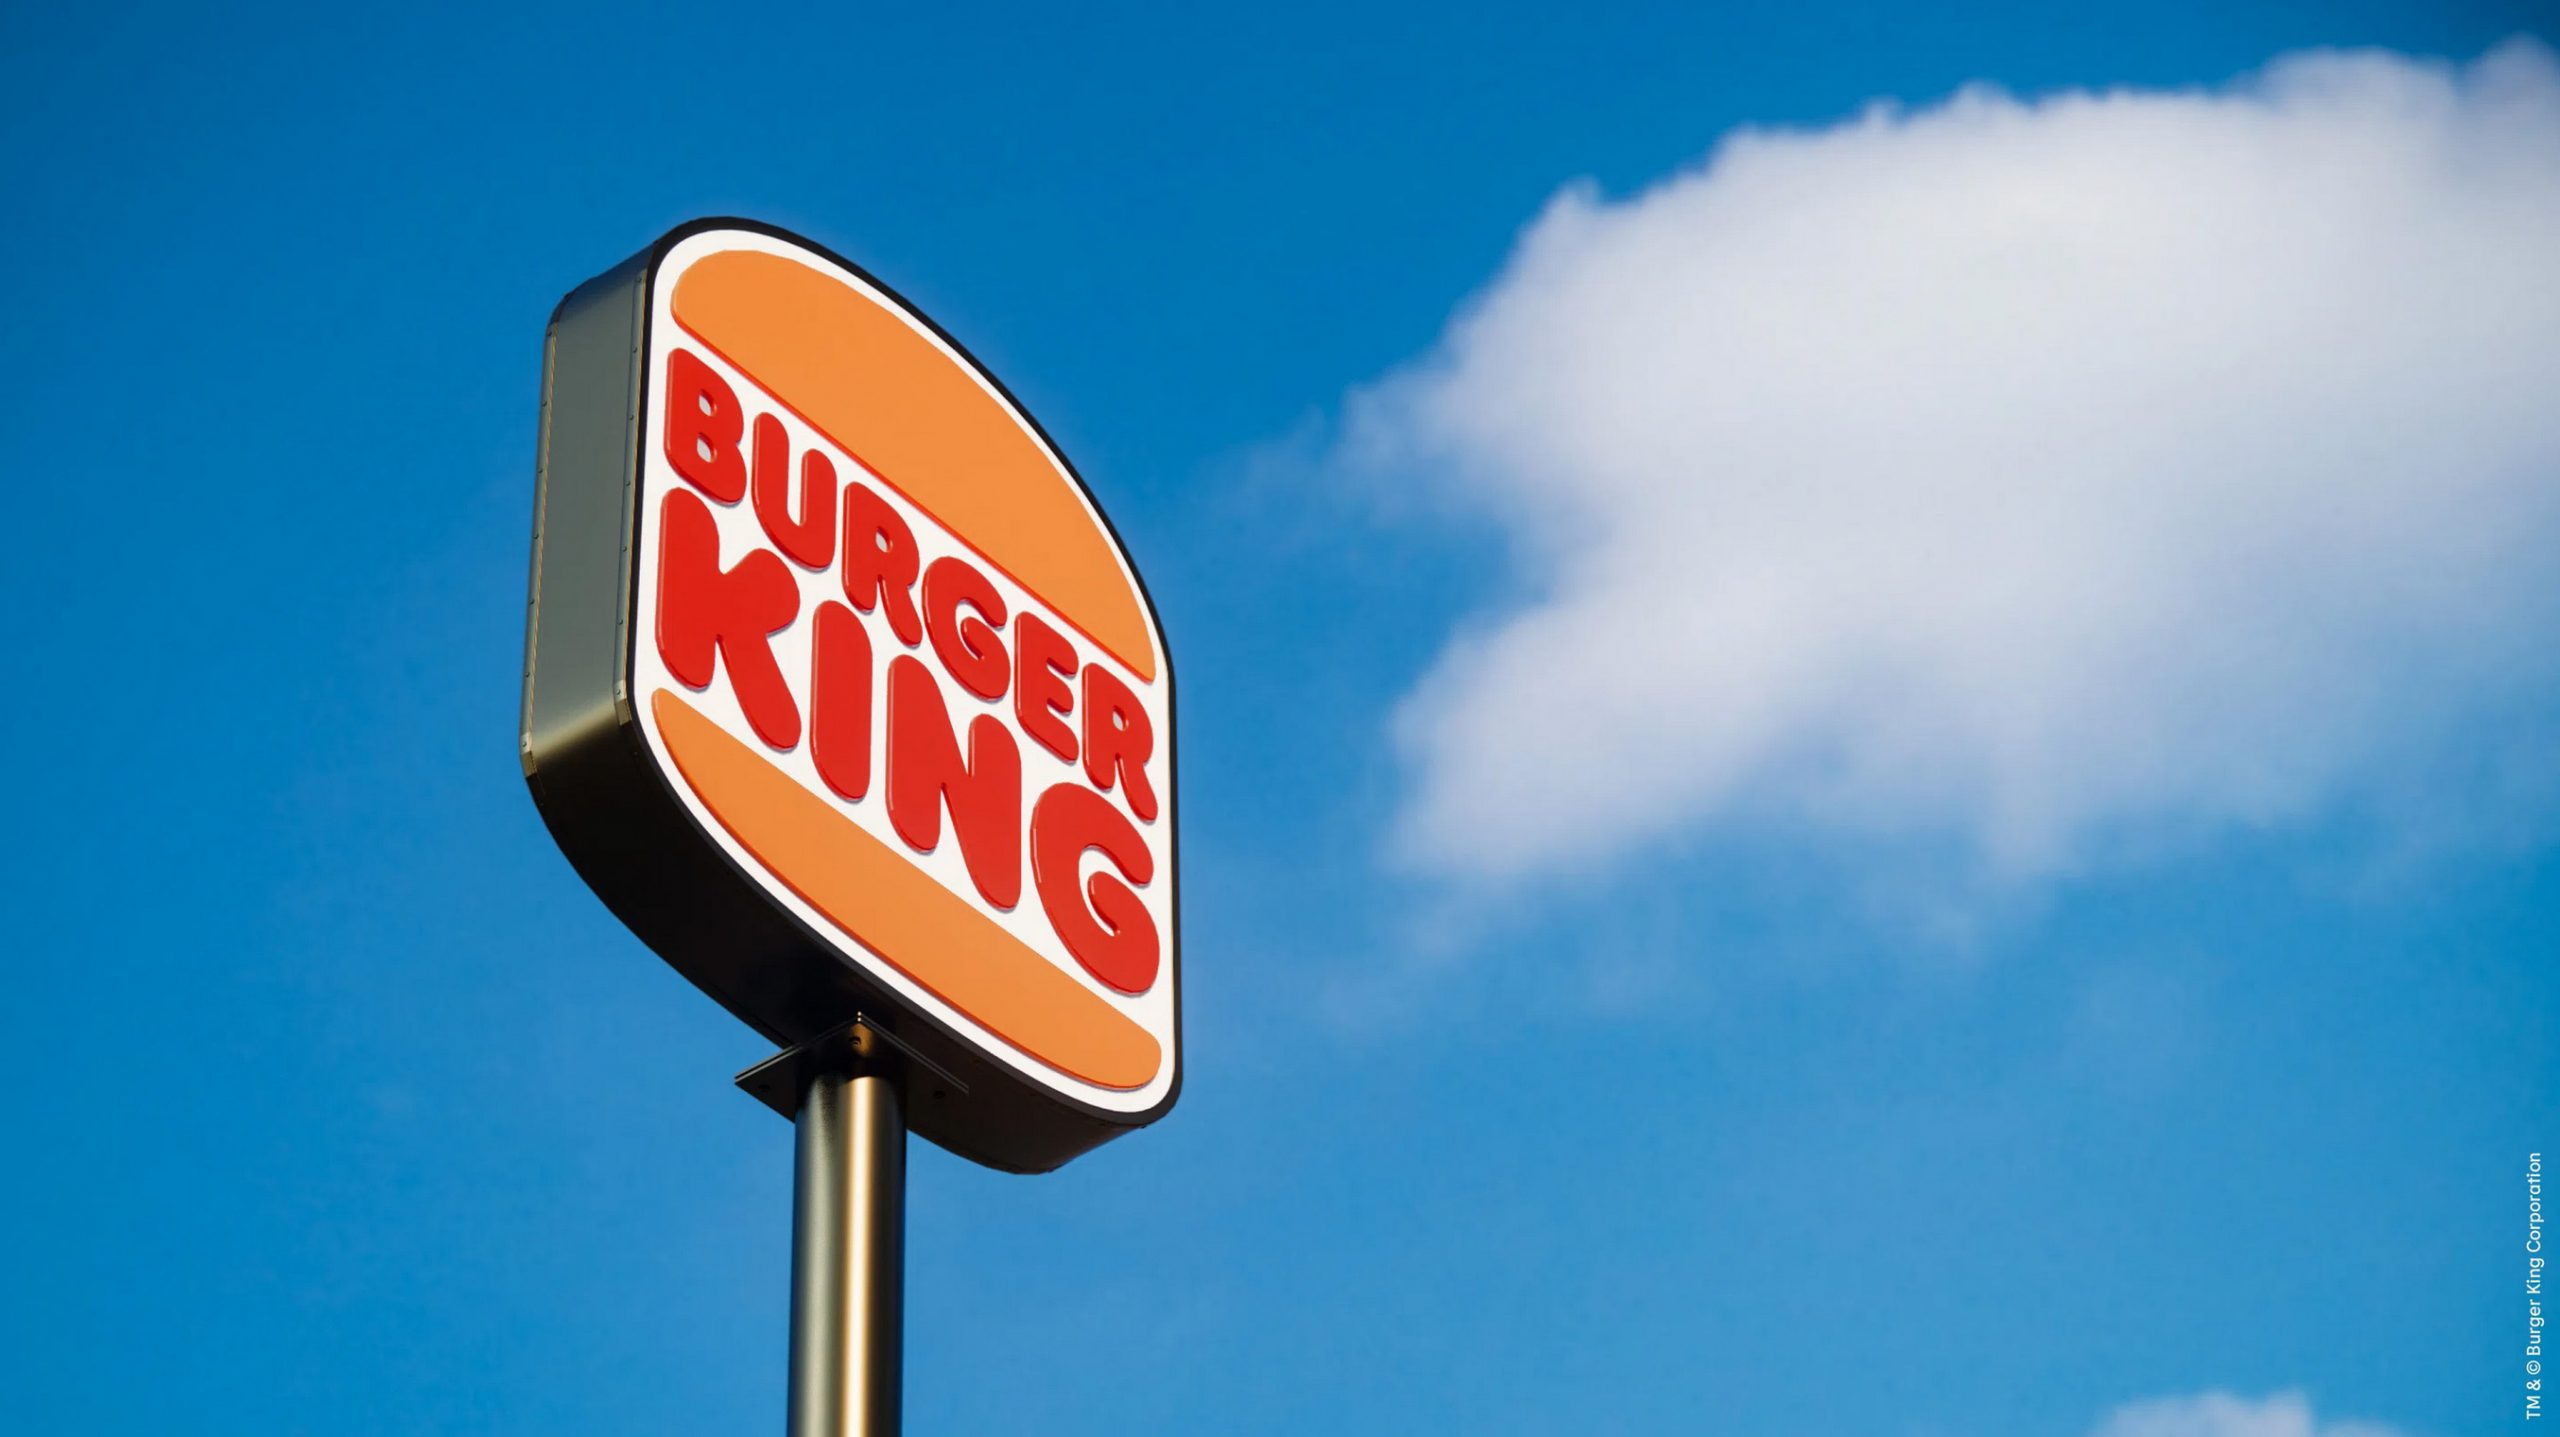 Burger King new logo and outside sign